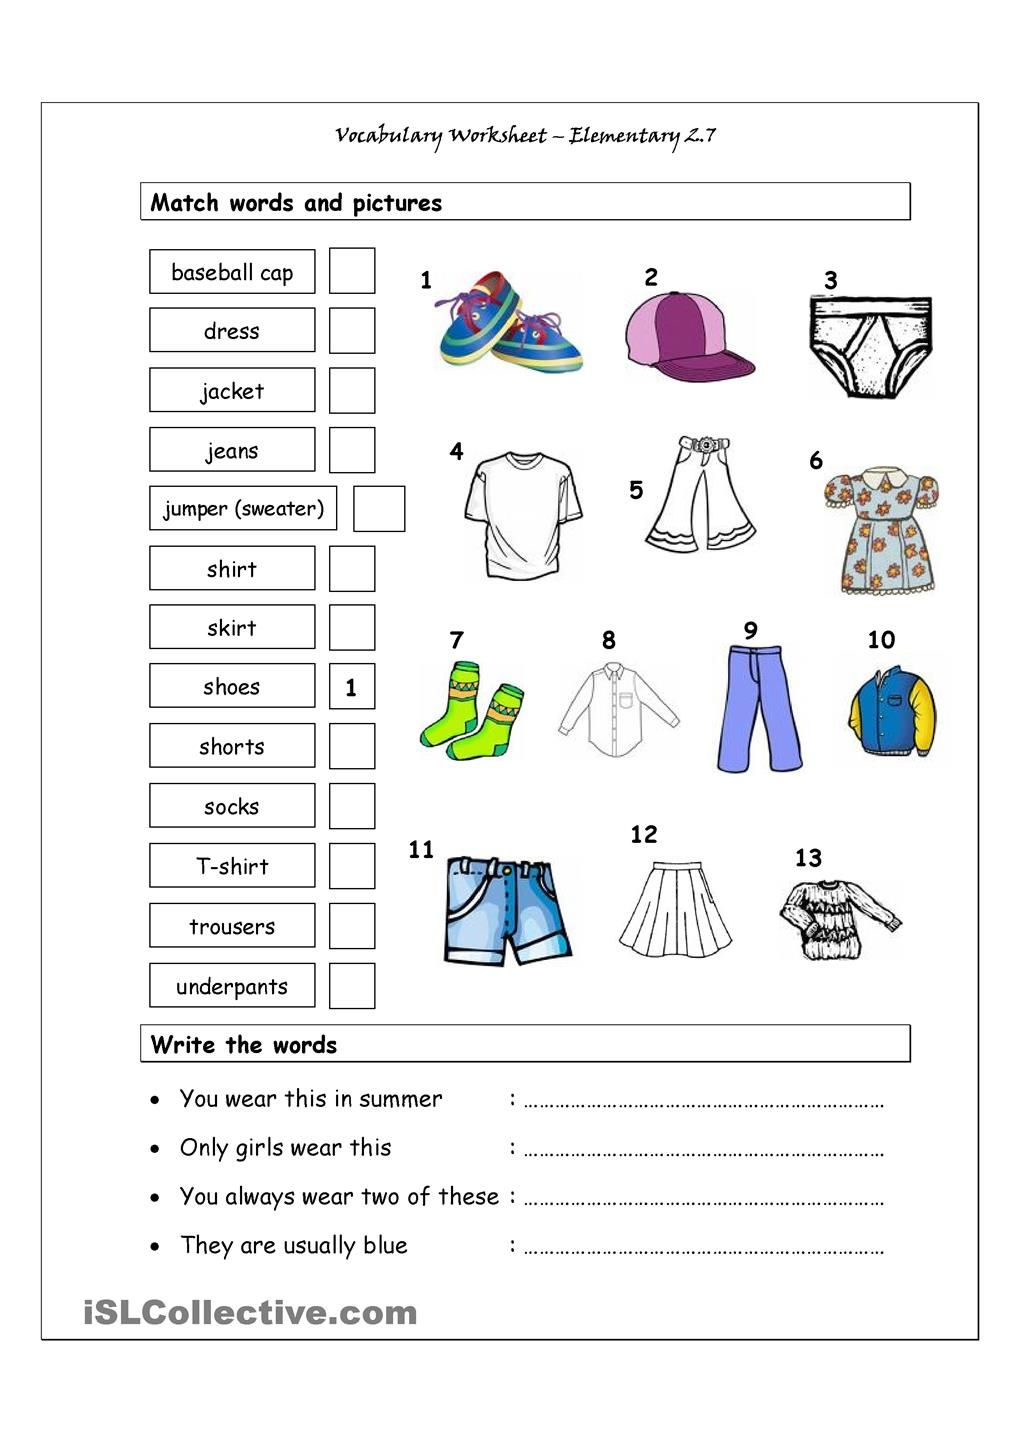 Conhecido Vocabulary Matching Worksheet - Elementary 2.7 (CLOTHES) | english  JX22